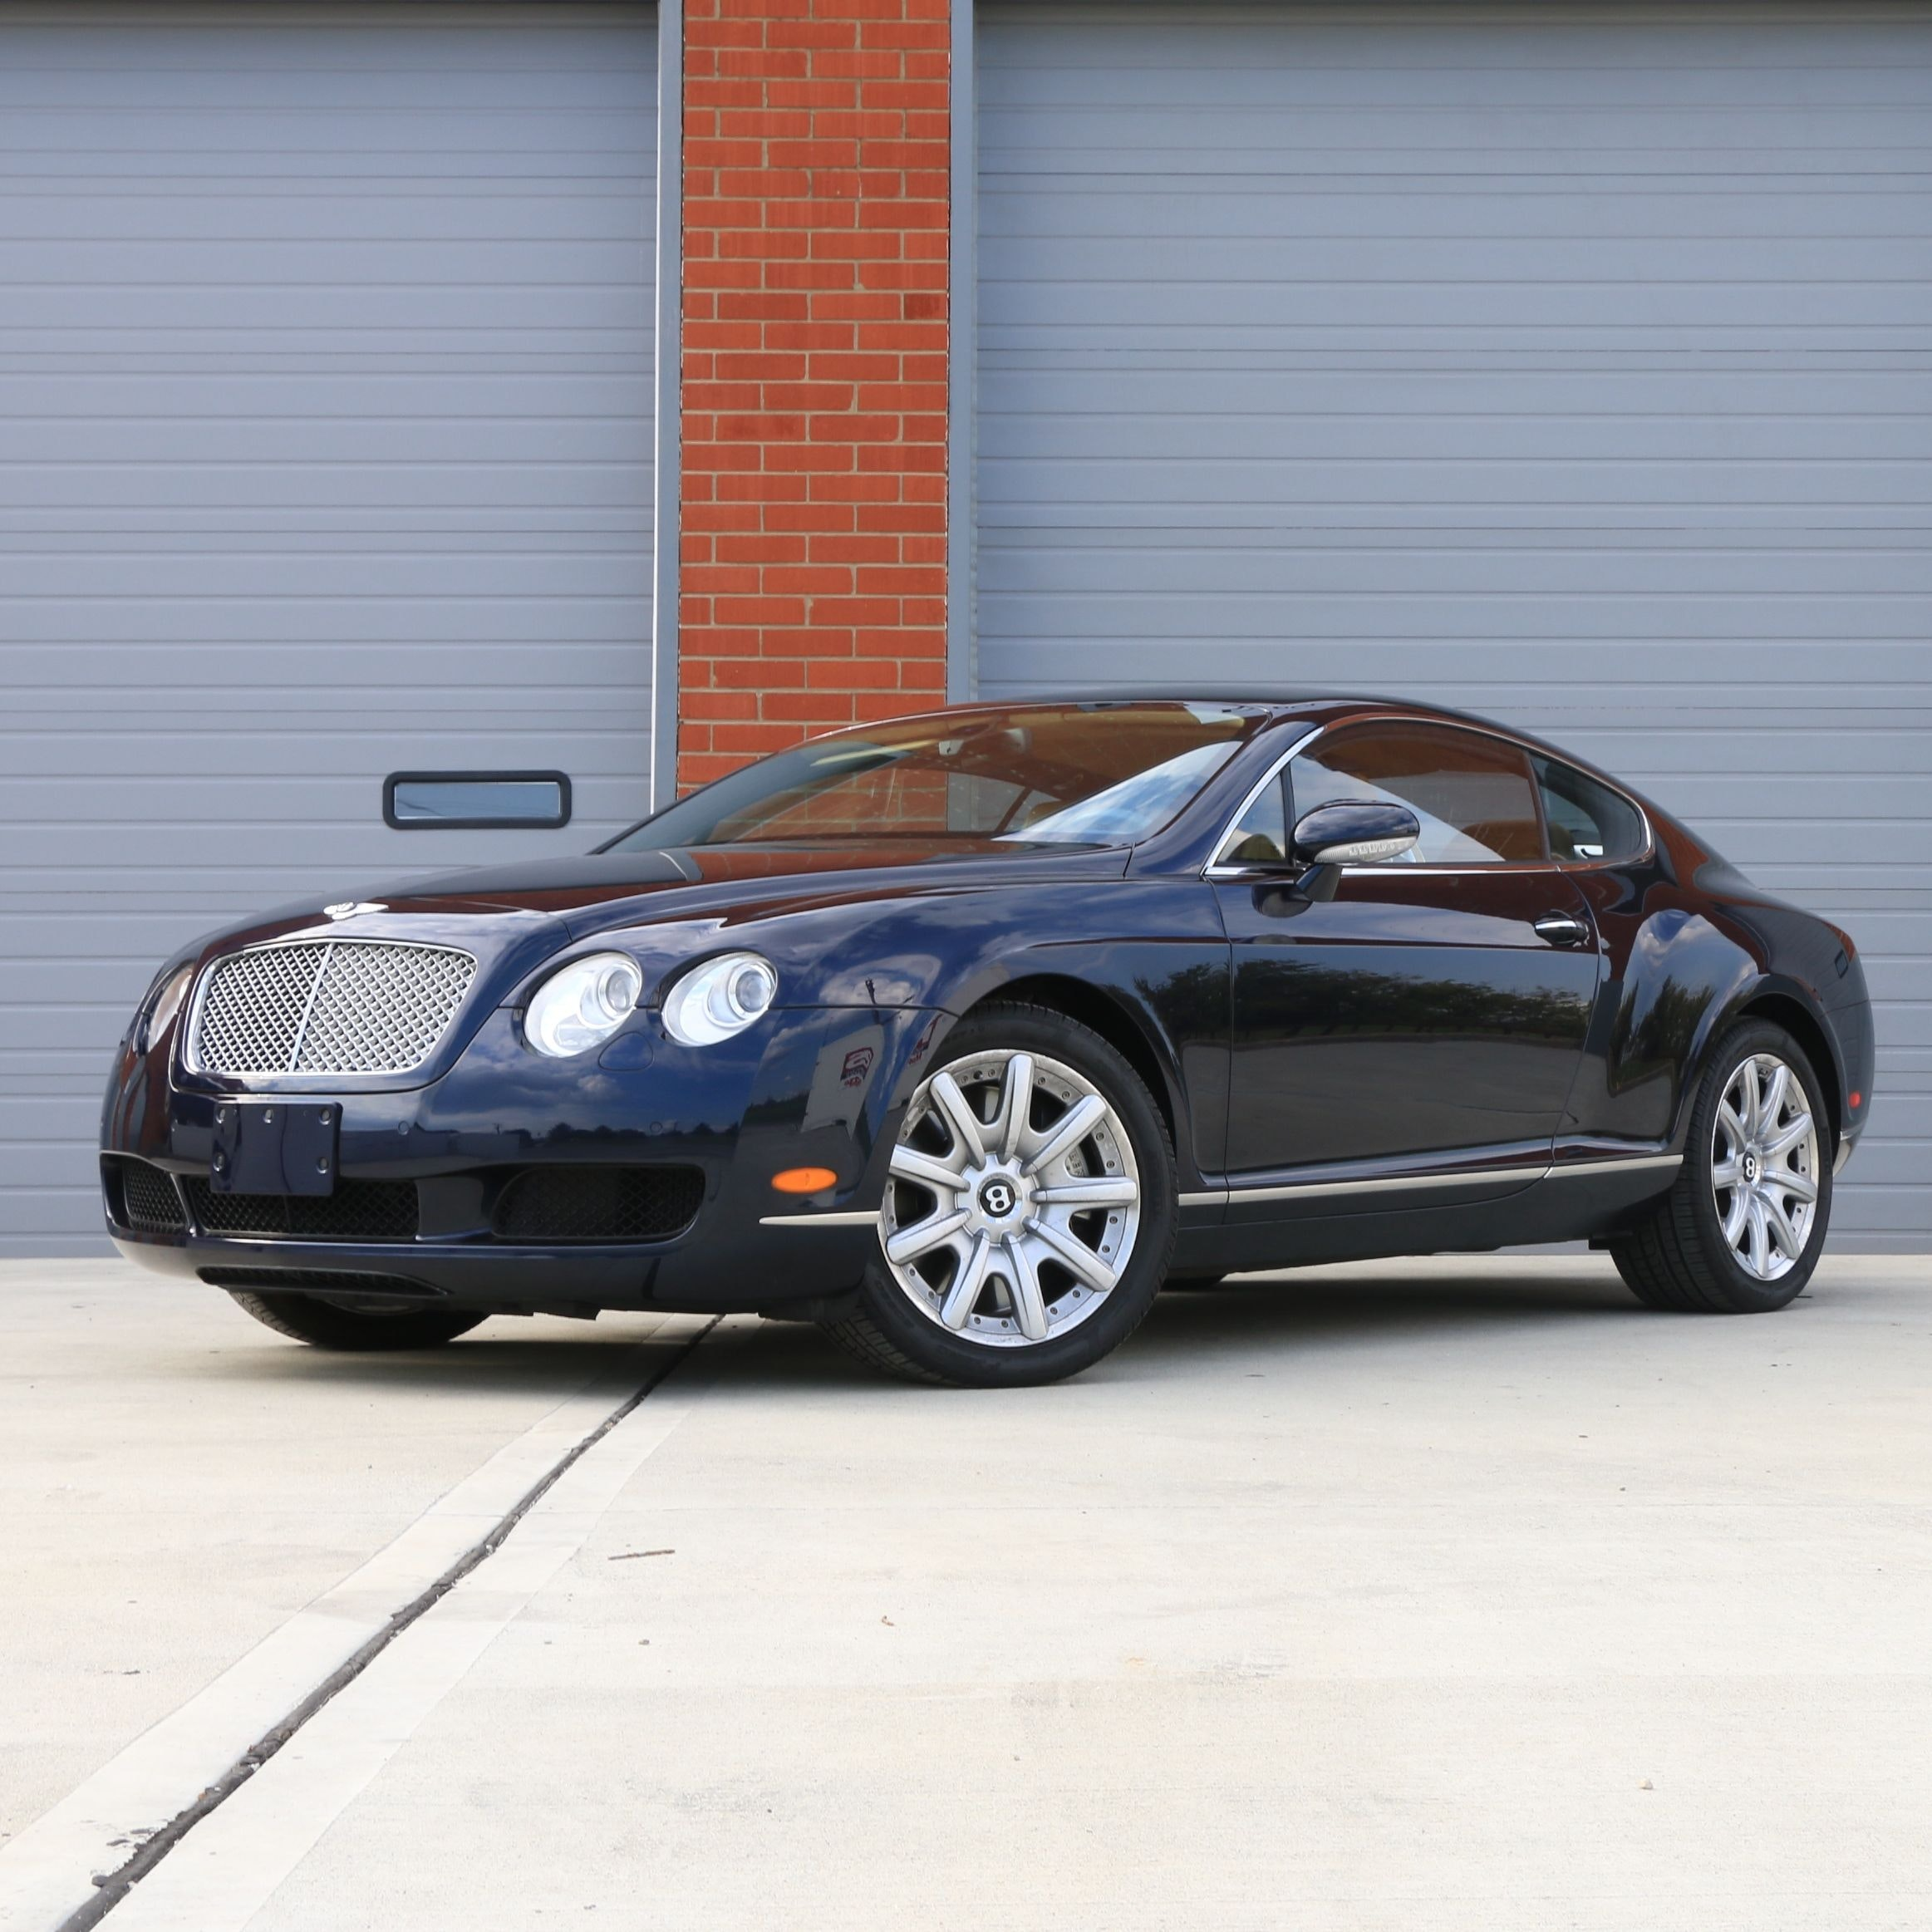 2005 Bentley Continental GT Luxury Turbo Coupe